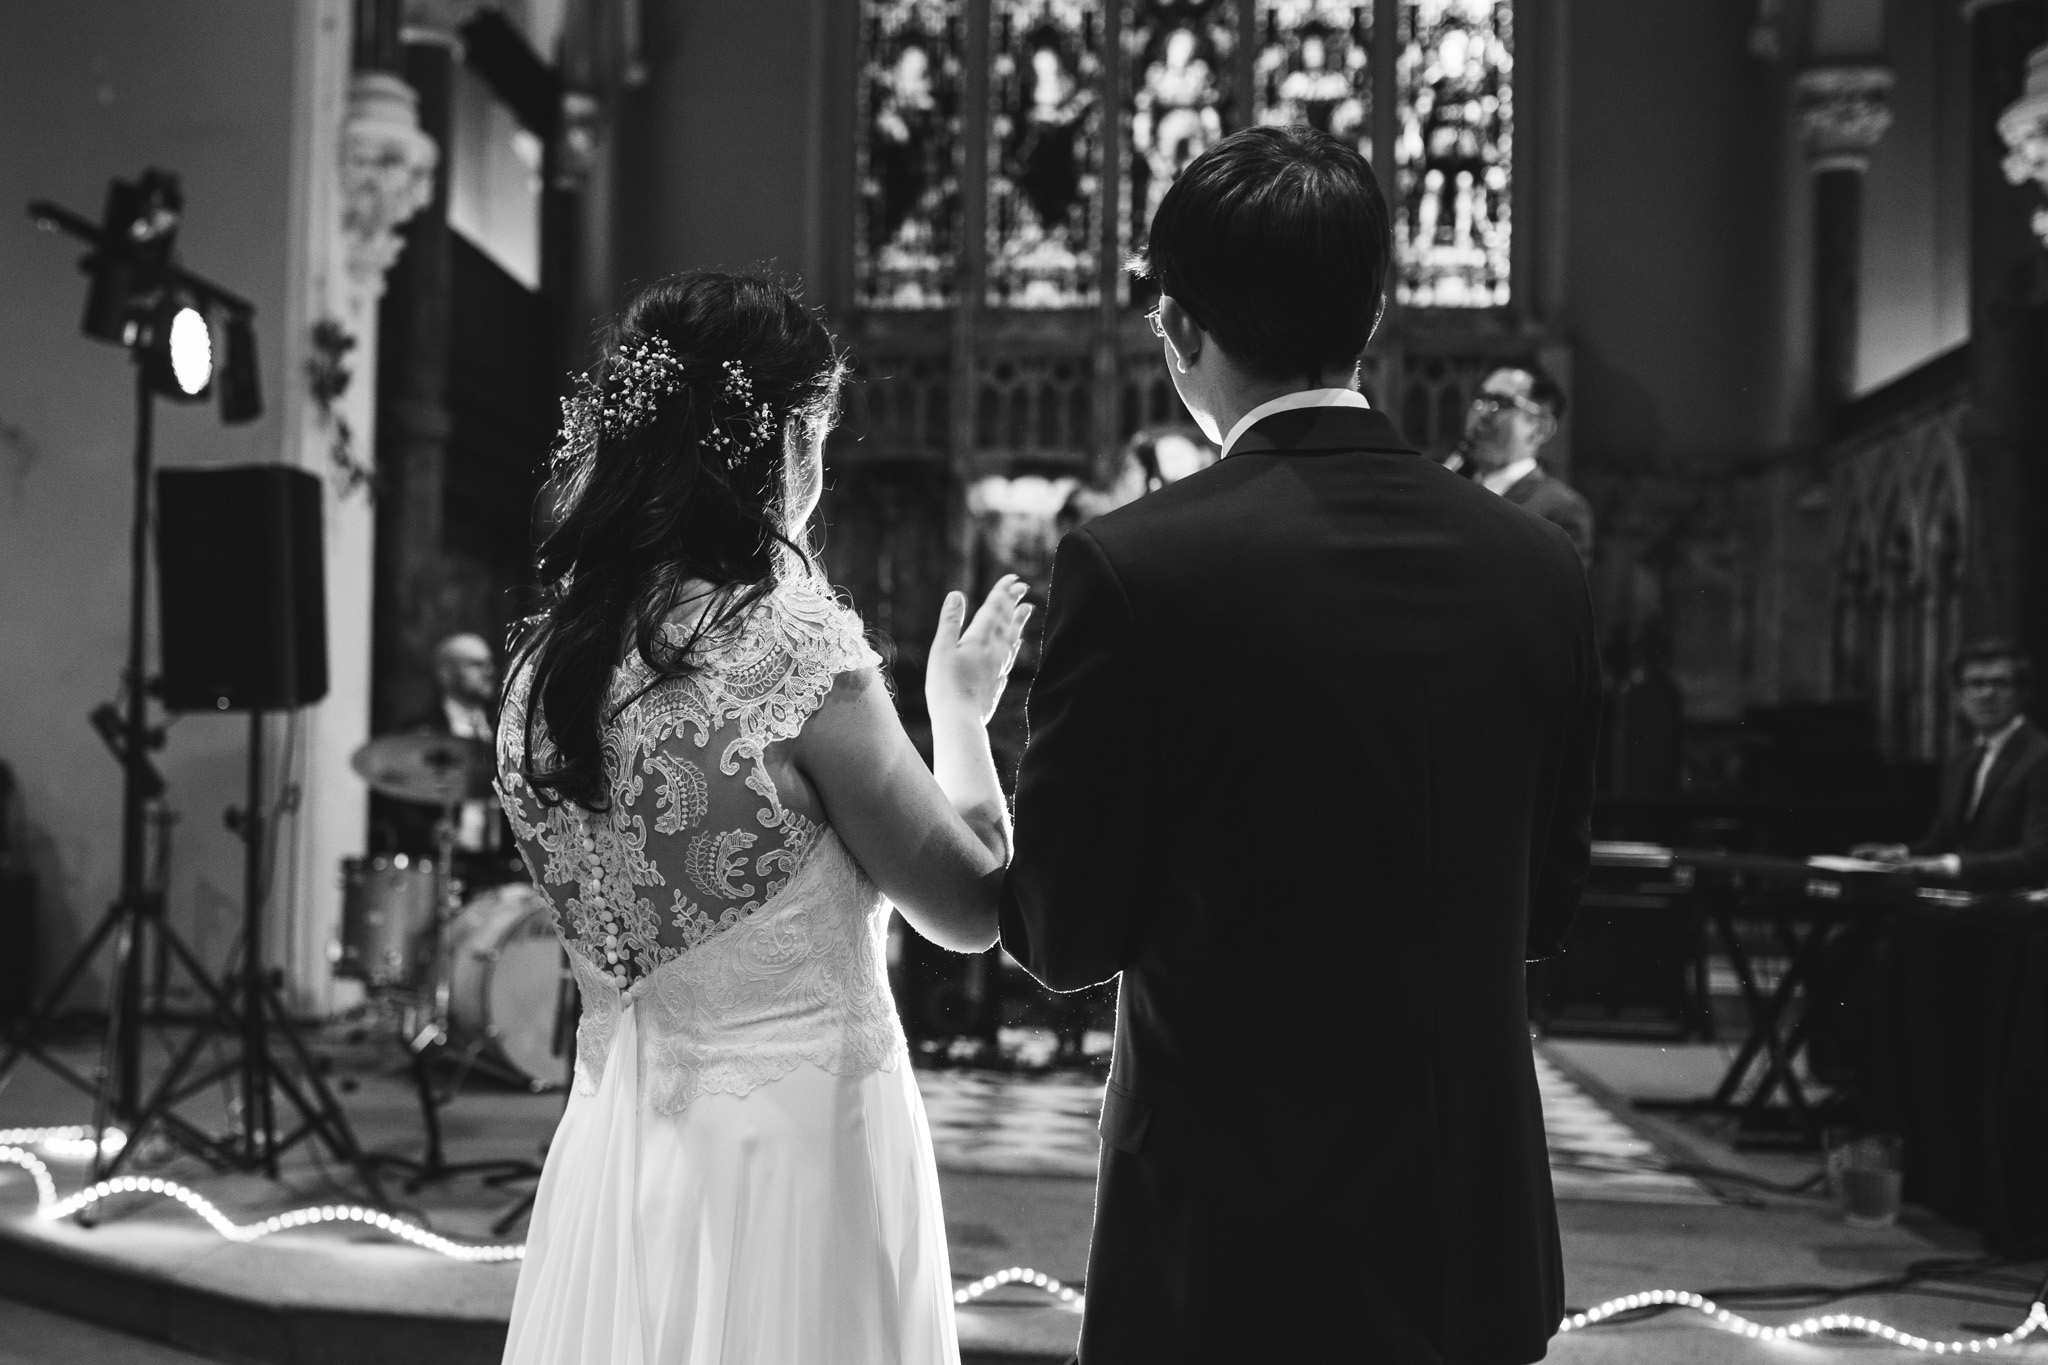 st-michaels-church-chester-square-london-wedding-photography_web__1927__38A3744.jpg